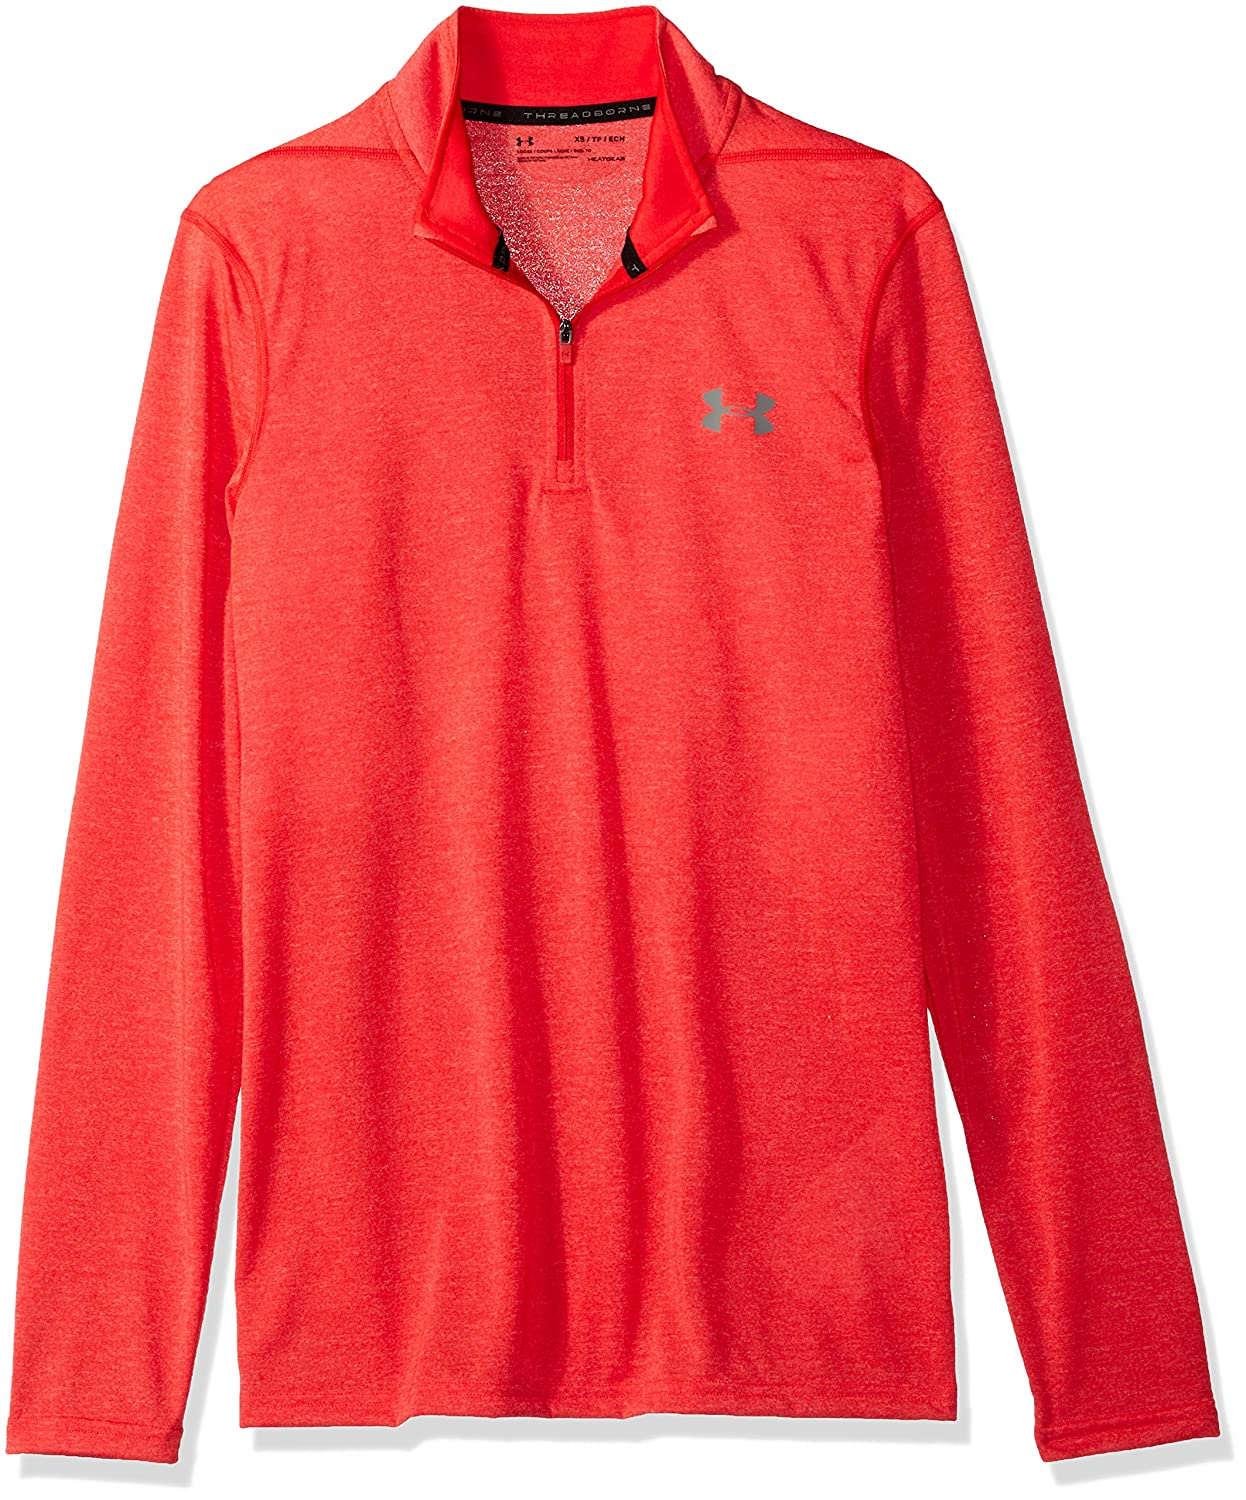 Under Armour Threadborne 1/4 Zip für Herren